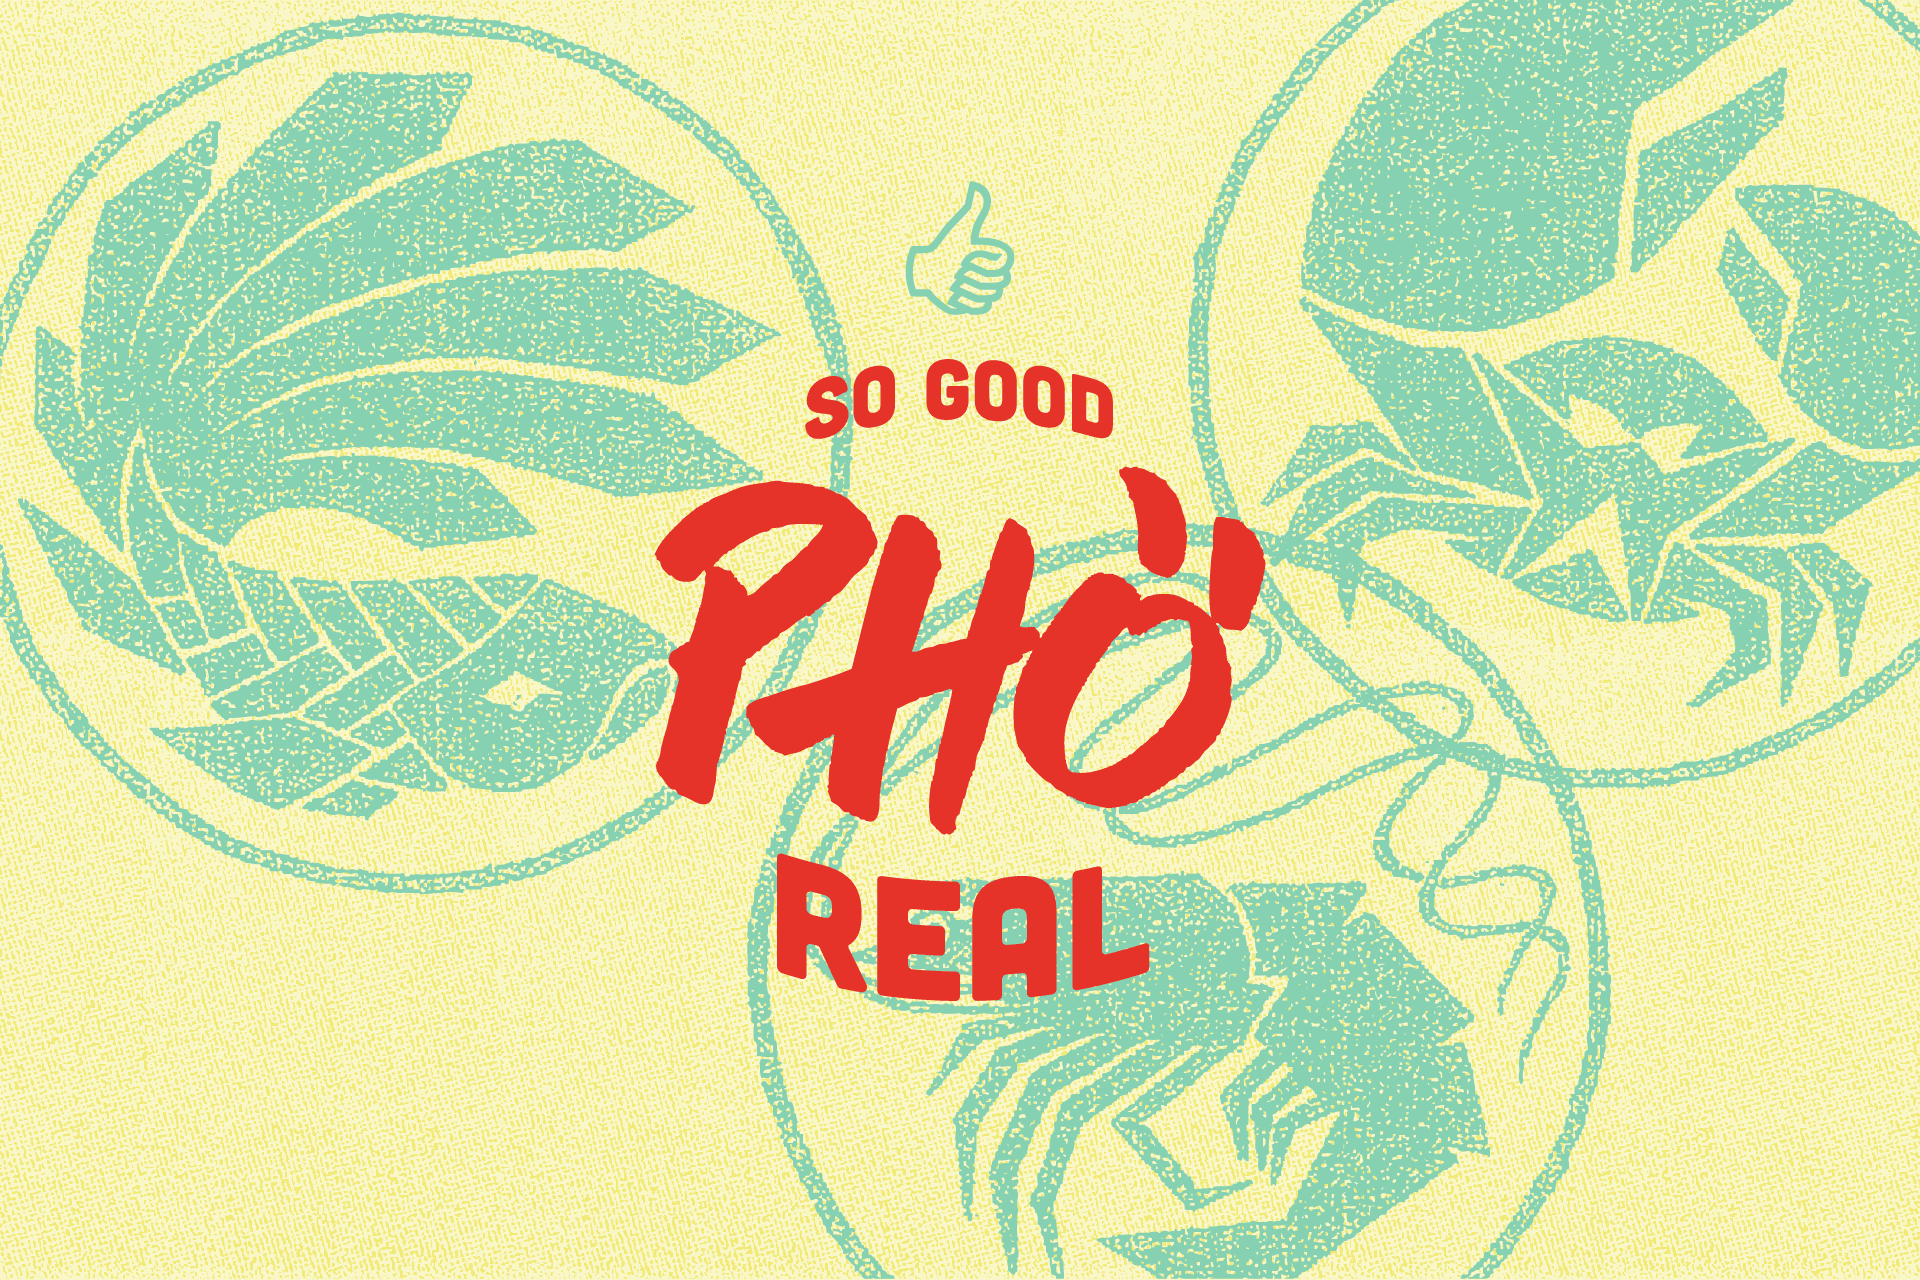 Xeom so good pho real